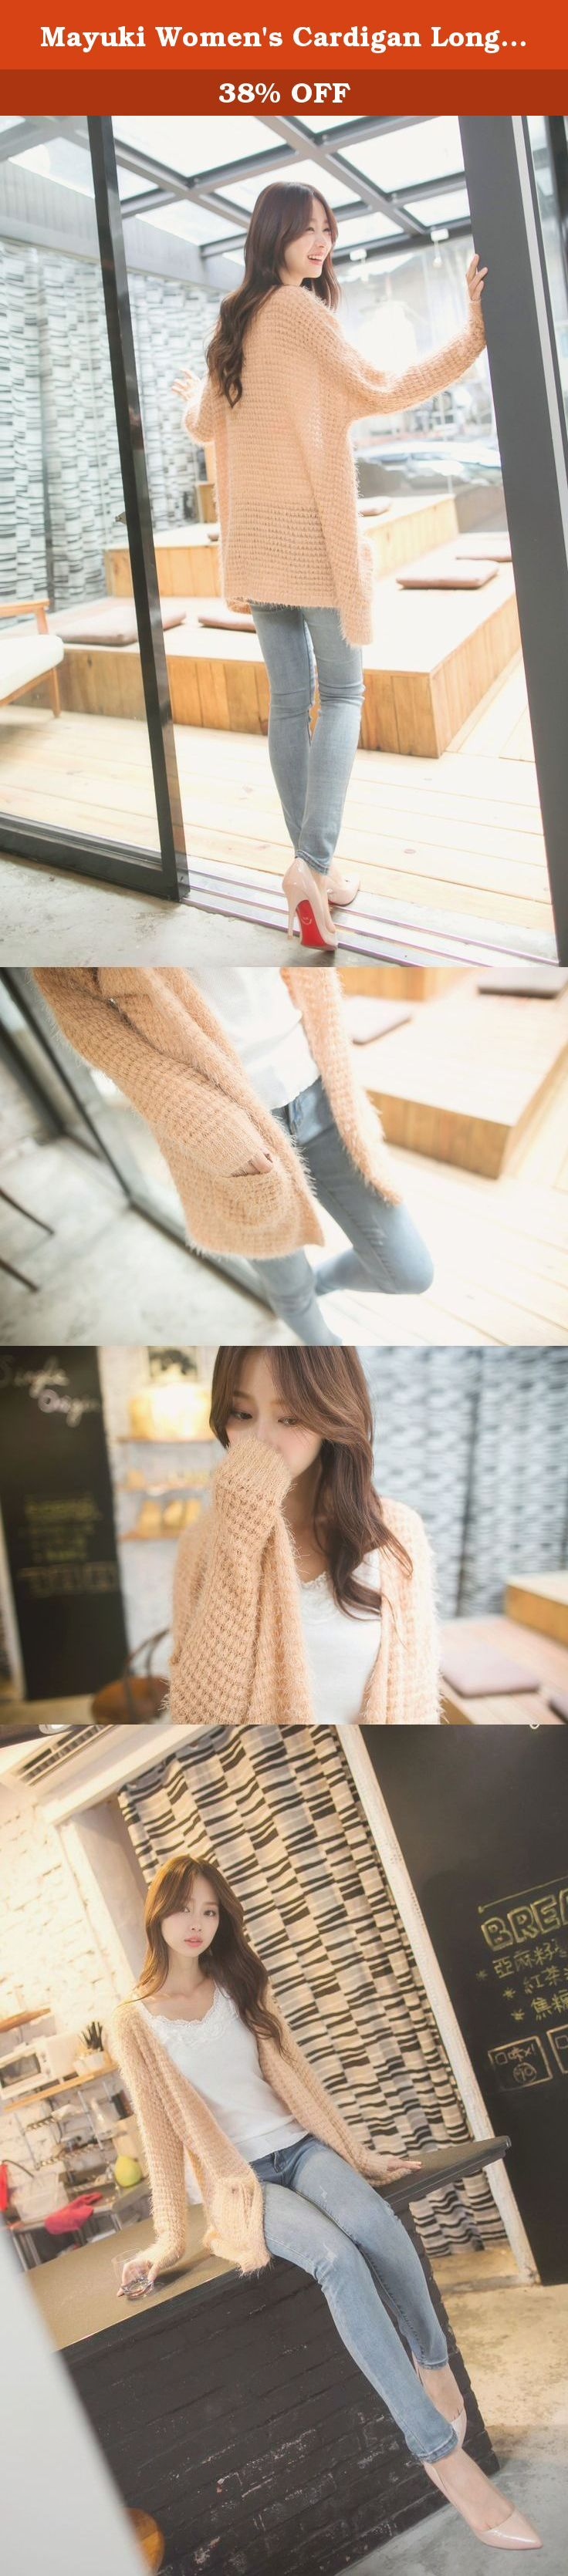 "Mayuki Women's Cardigan Long Cut Sweater with Pockets One Size Pink. One Size / US 00-10 fits (Waist: 24""-30"") (Hip: 33""-40""). Material: 100% Polypropylene, Stretchable: Yes, Thickness: Medium. Dry clean or hand wash only. Imported. The models in the pictures are between 5.1 ft - 5.4 ft in height. Bags and other accessories are not included unless otherwise noted."